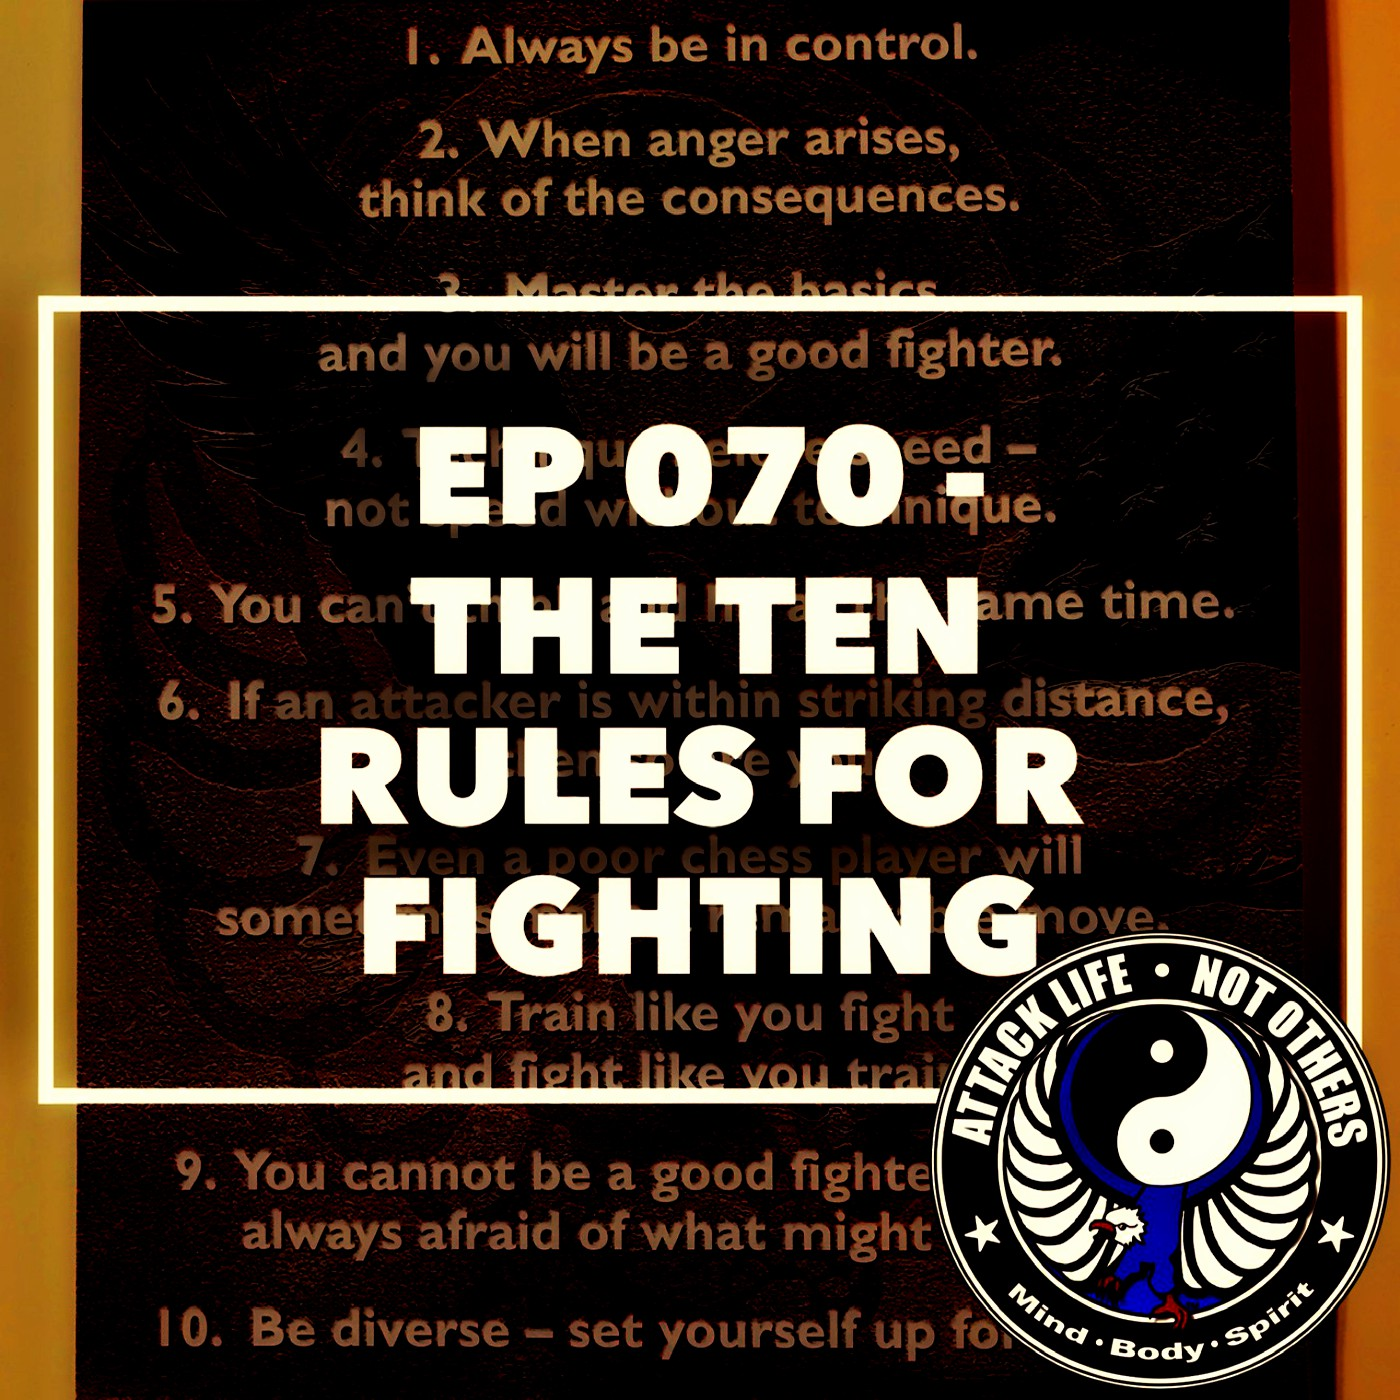 Ep 070 - The Ten Rules for Fighting